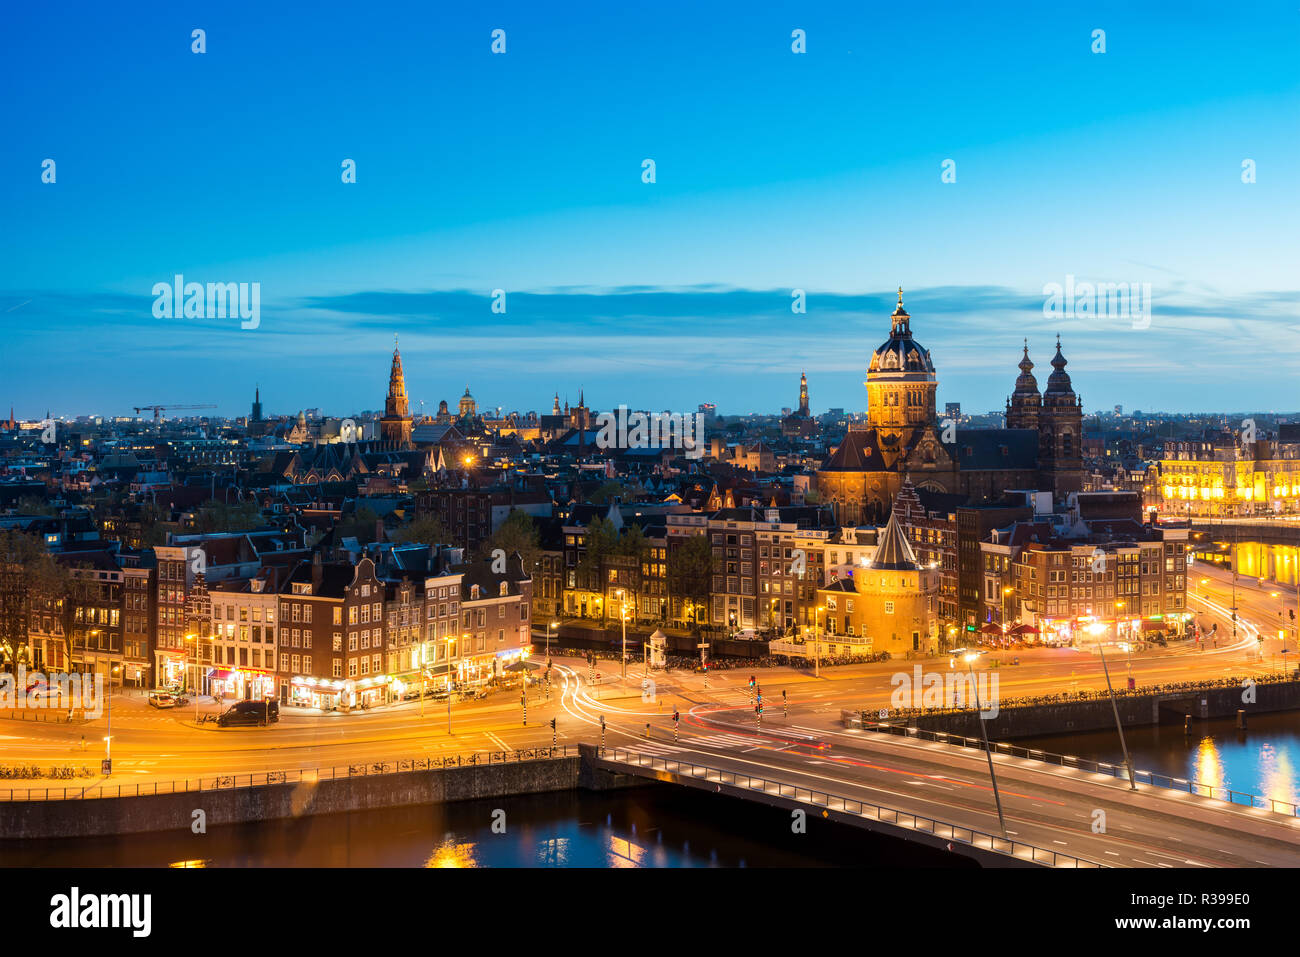 Amsterdam skyline in historical area at night, Netherlands. Ariel view of Amsterdam, Netherlands. - Stock Image